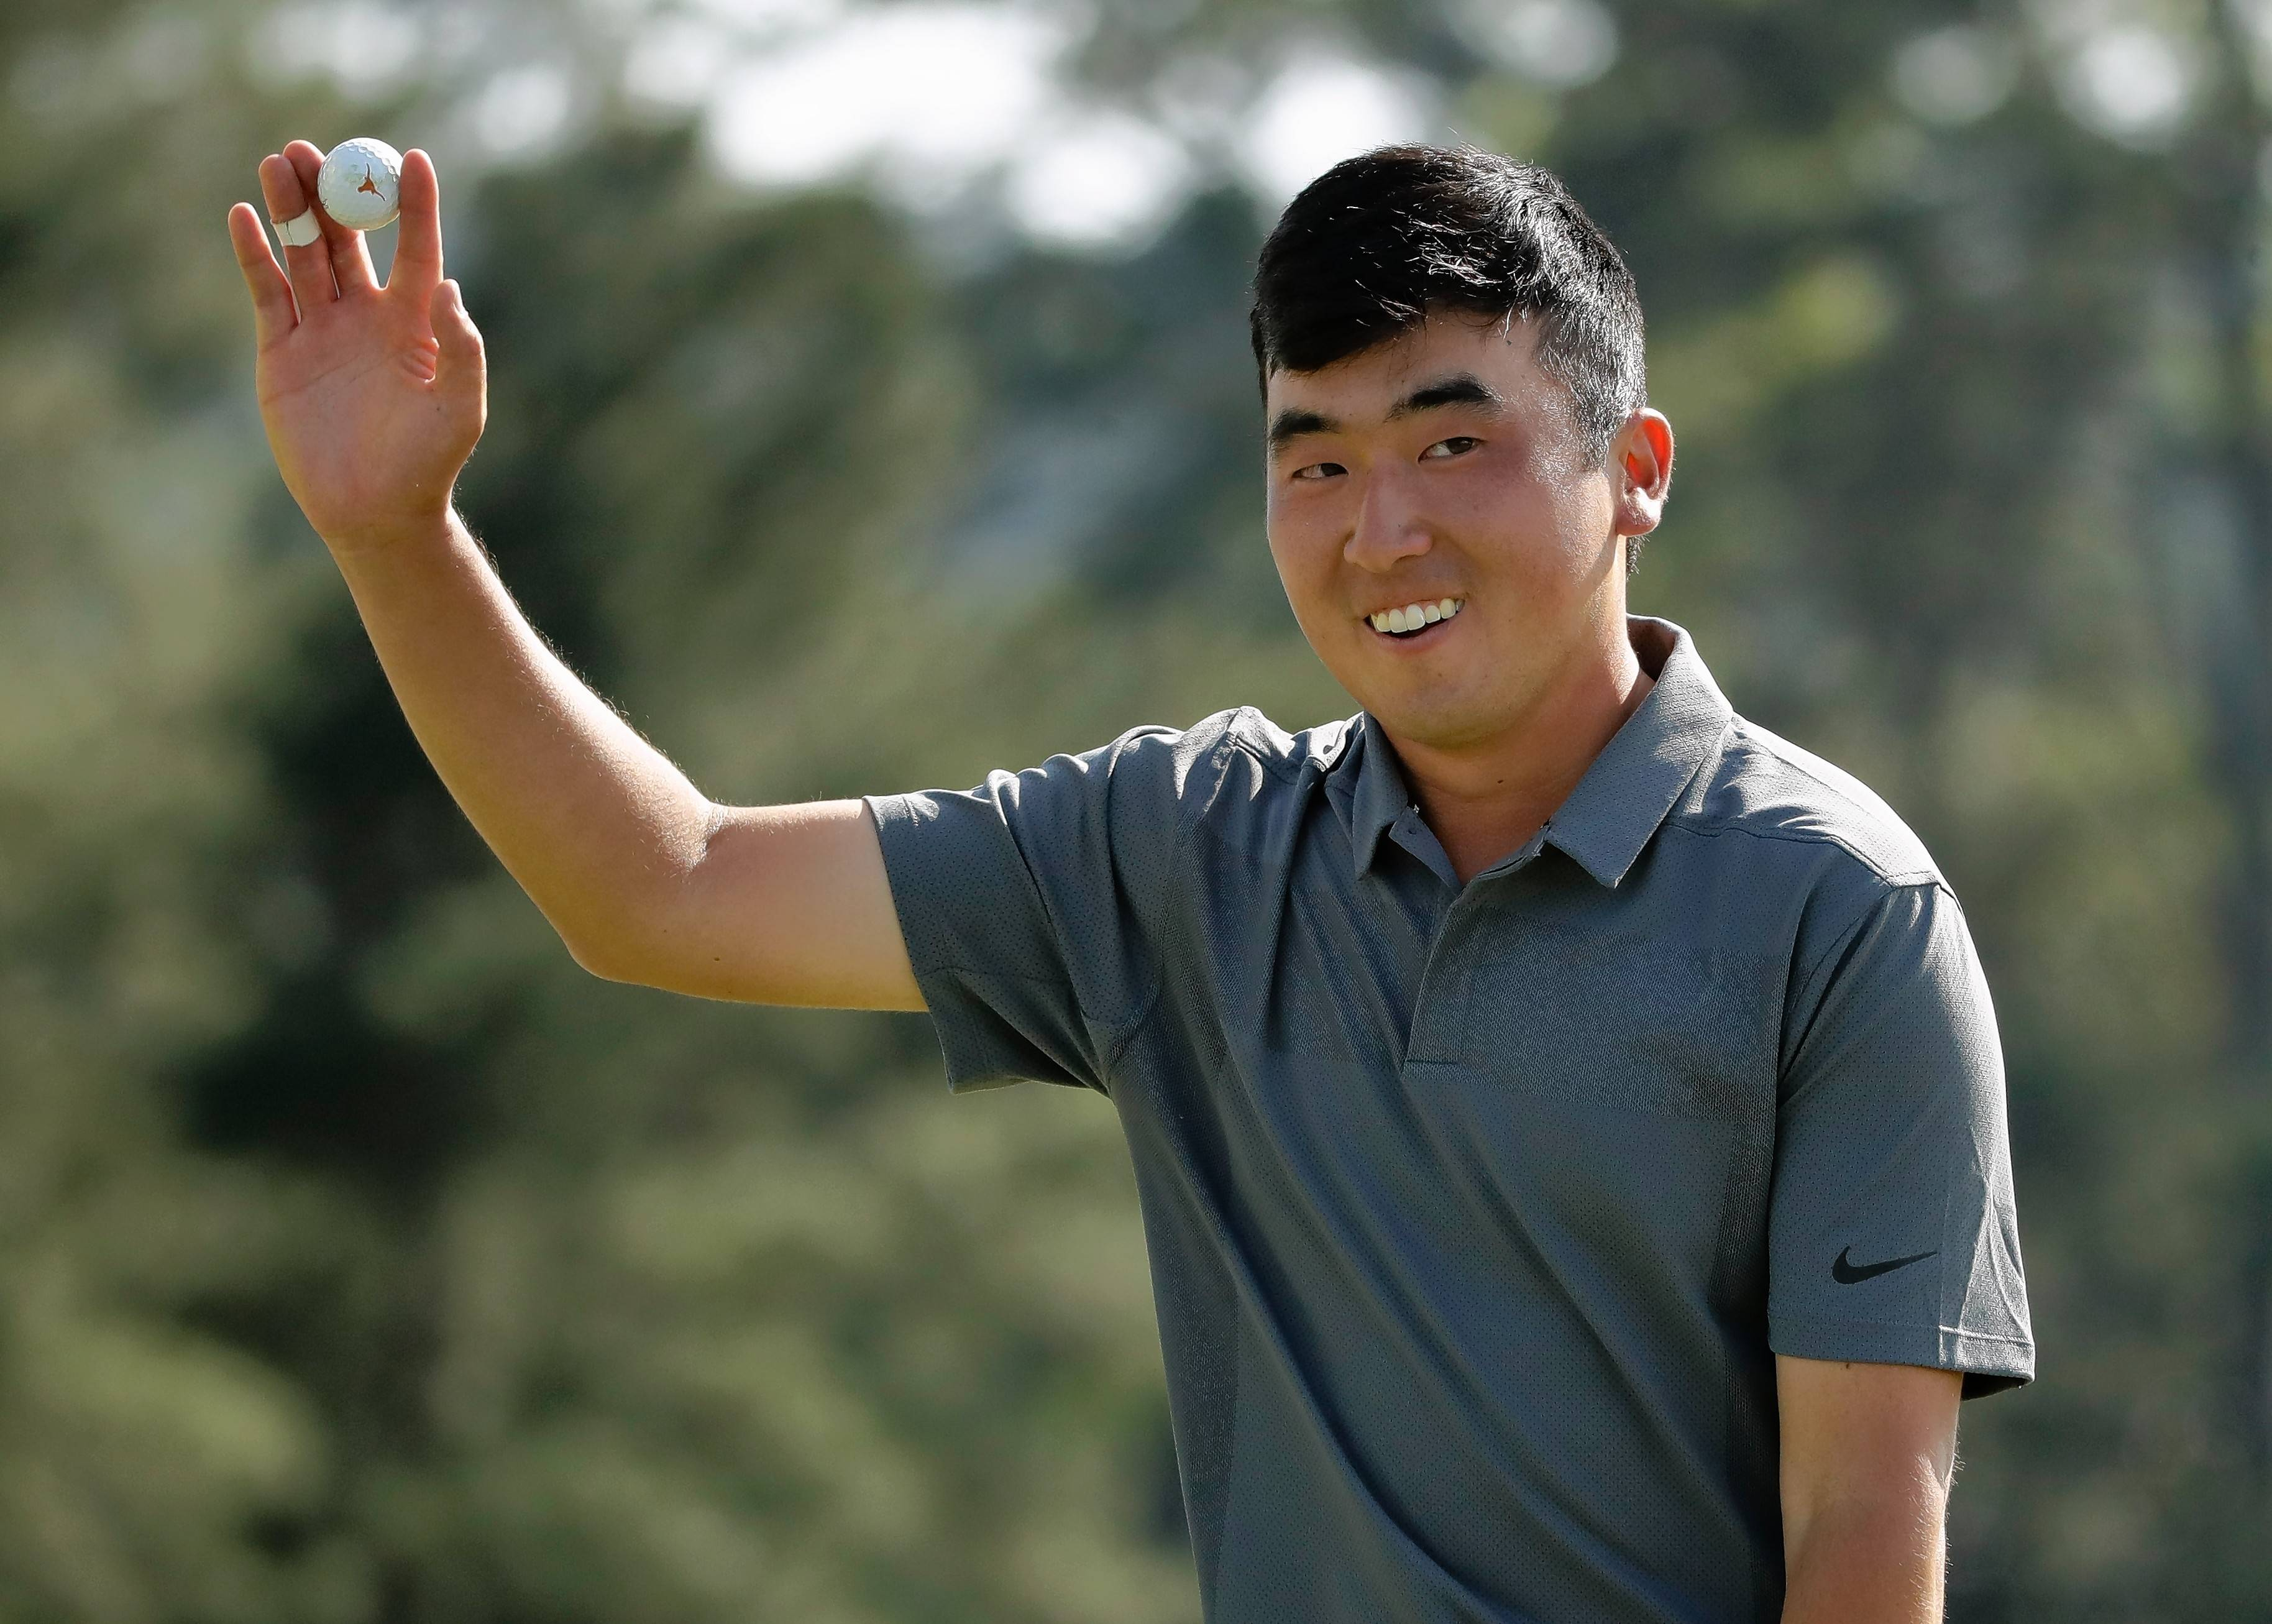 Ghim among local golfers awaiting U.S. Open challenge